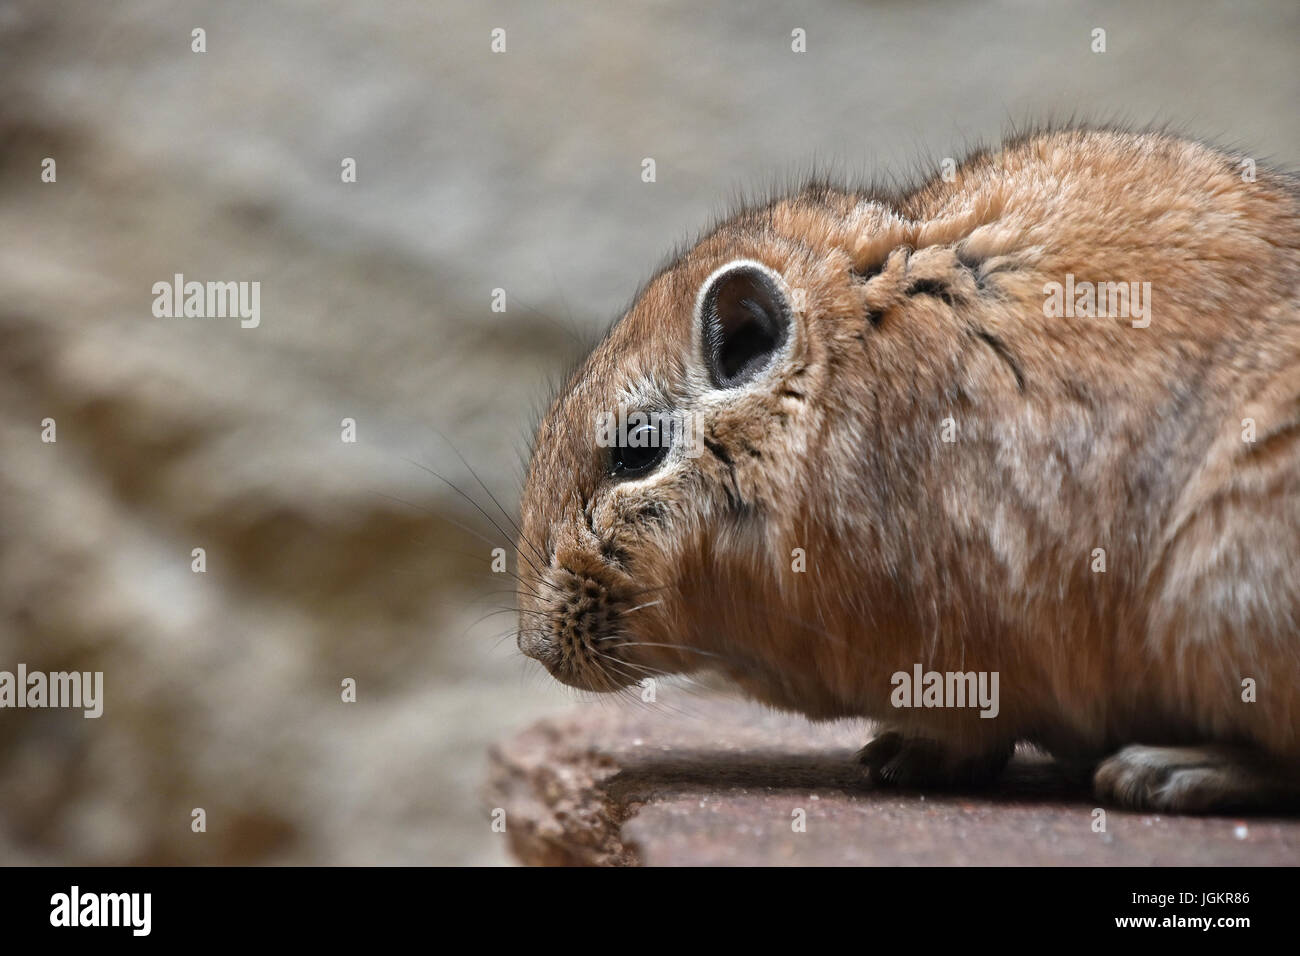 Close up side profile portrait of Gundi comb rat, African rodent, standing on stone, low angle view - Stock Image